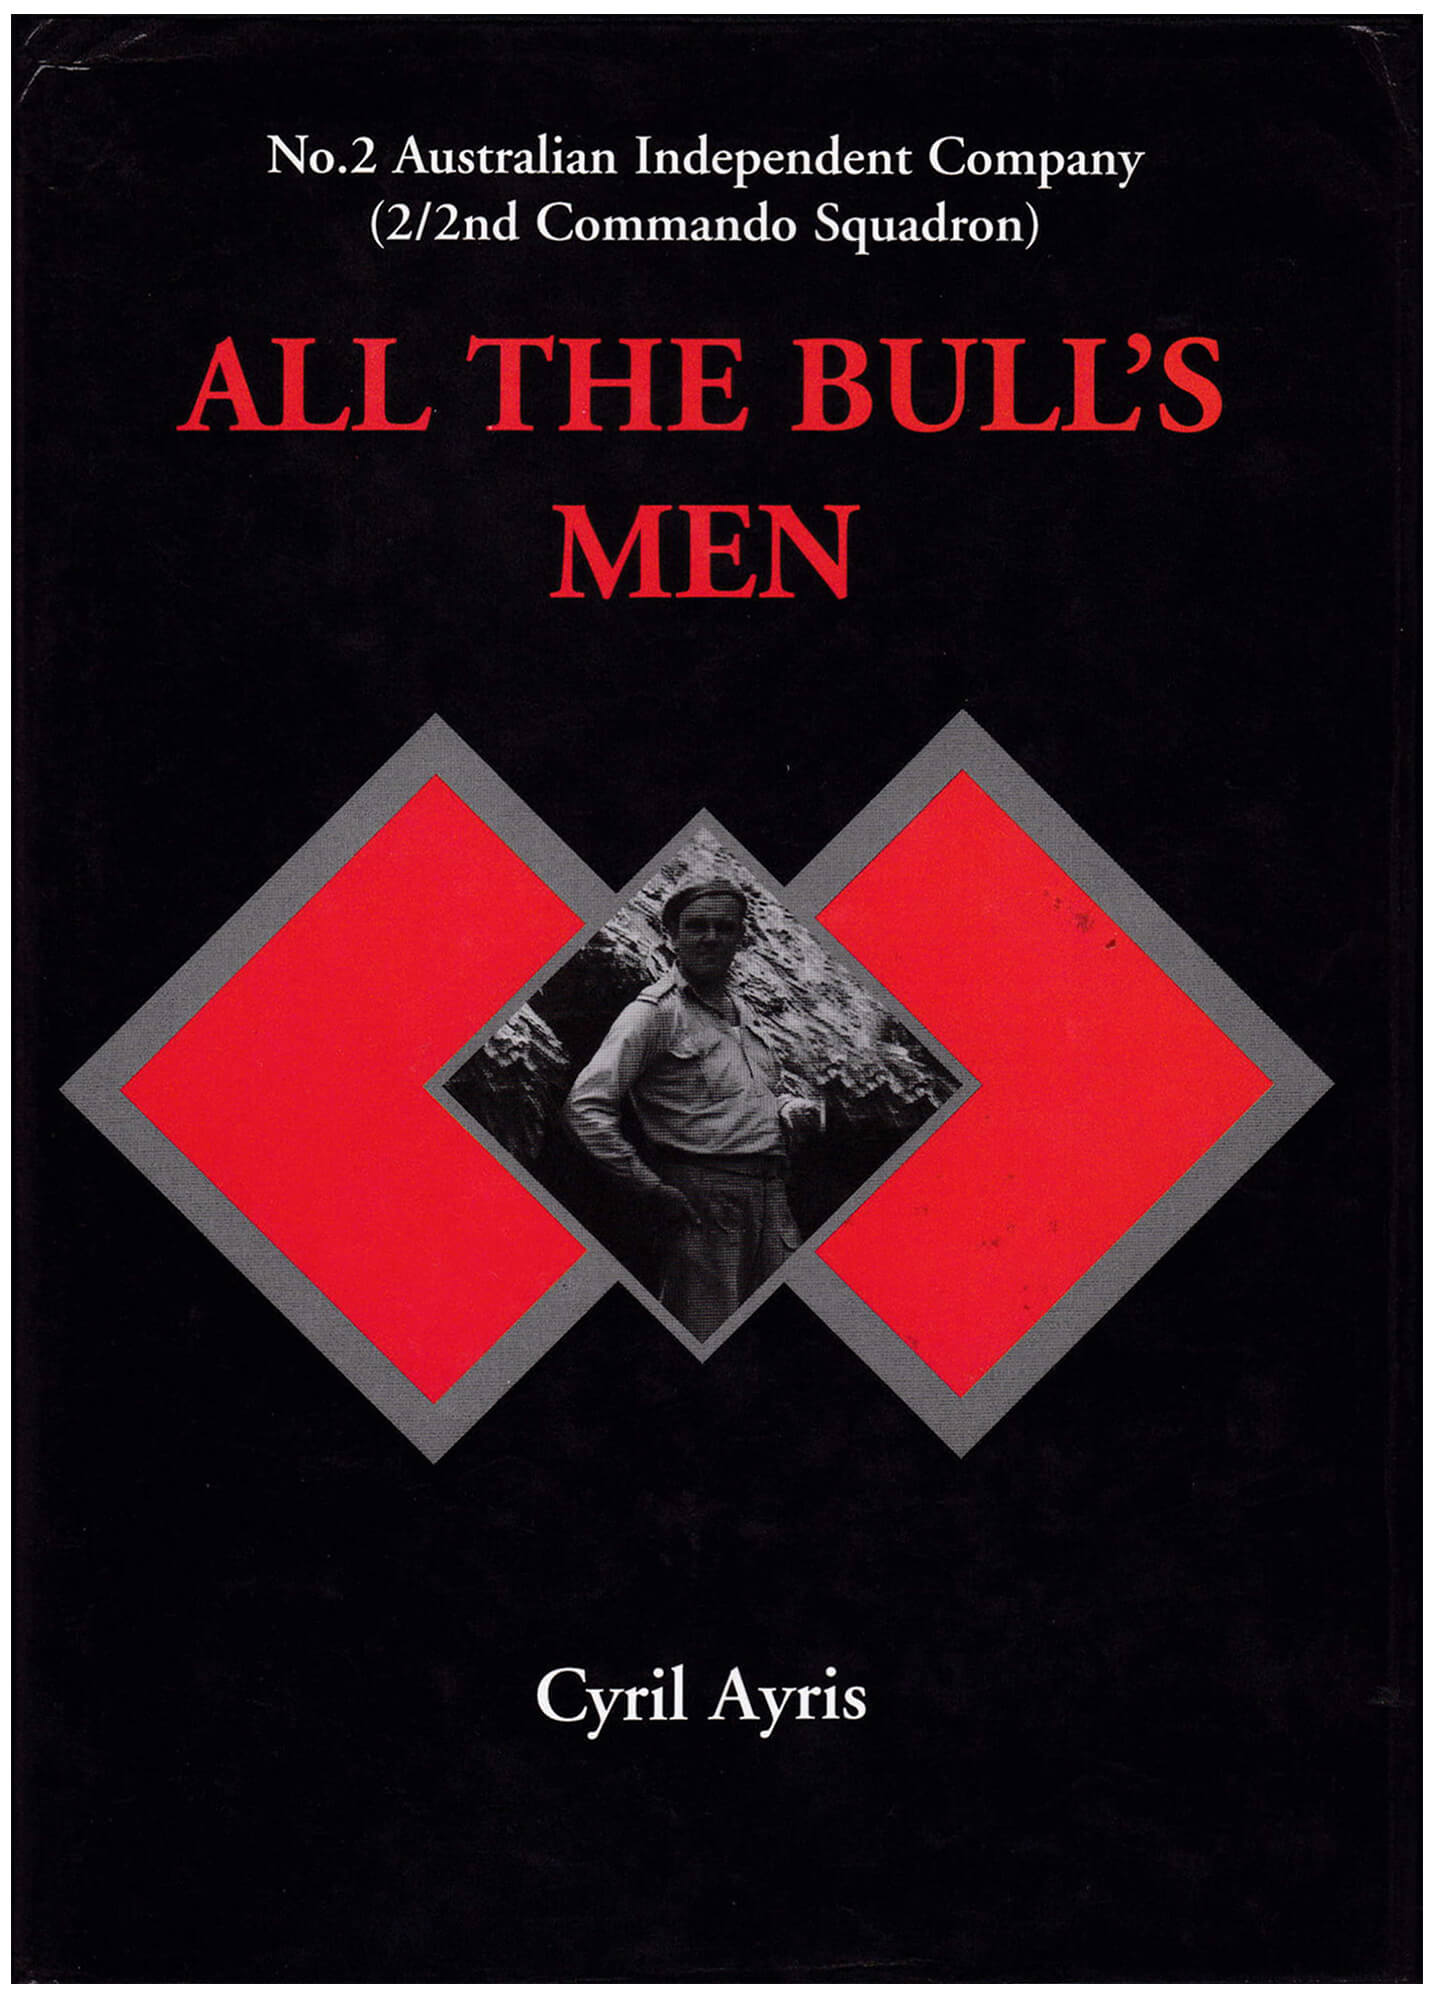 ALL THE BULL'S MEN - No 2 Australian Independent Company - 2/2nd Commando Squadron -